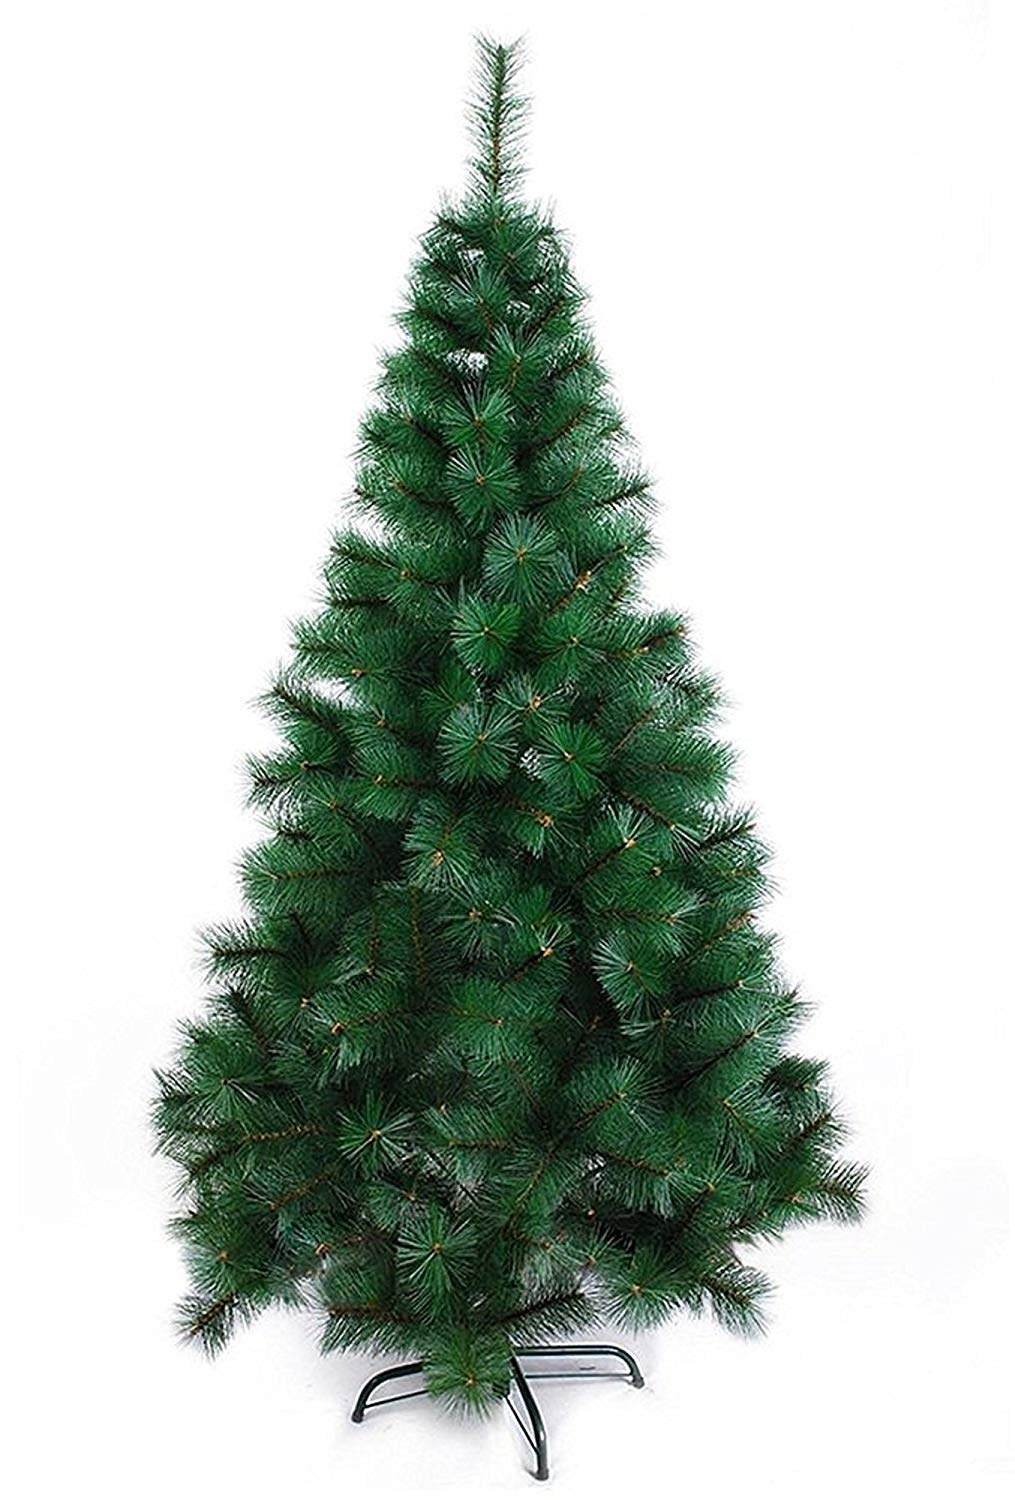 Buy Theme My Party Artificial 5ft Christmas Tree Xmas Pine Tree With Solid Metal Legs Green 5 Ft Online At Low Prices In India Amazon In Find the perfect christmas tree stock photos and editorial news pictures from getty images. theme my party artificial 5ft christmas tree xmas pine tree with solid metal legs green 5 ft